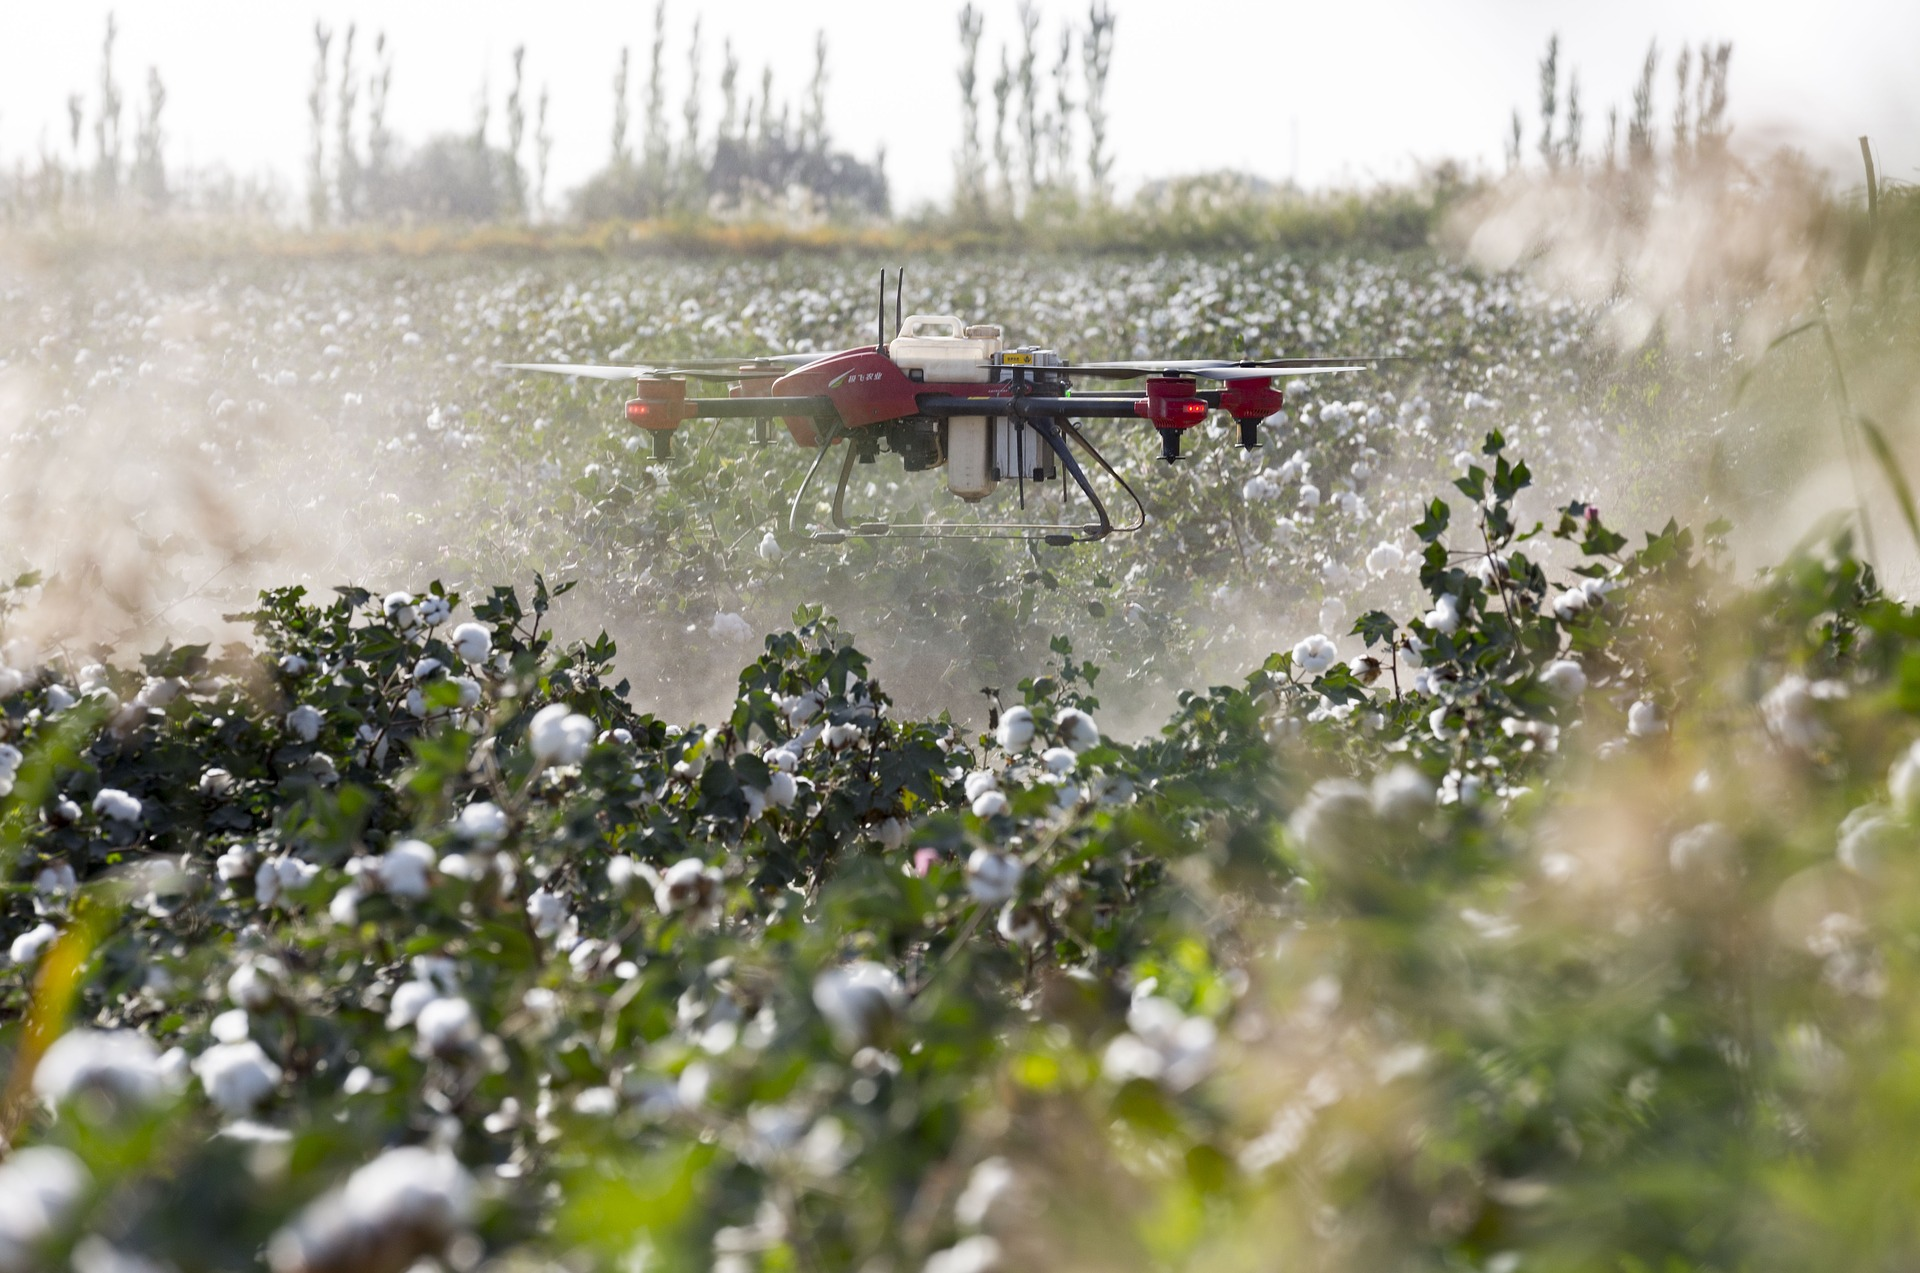 A red and black, 4-propeller drone hovers a few feet above green cotton plants in a field, emitting a fine white mist of pesticides.